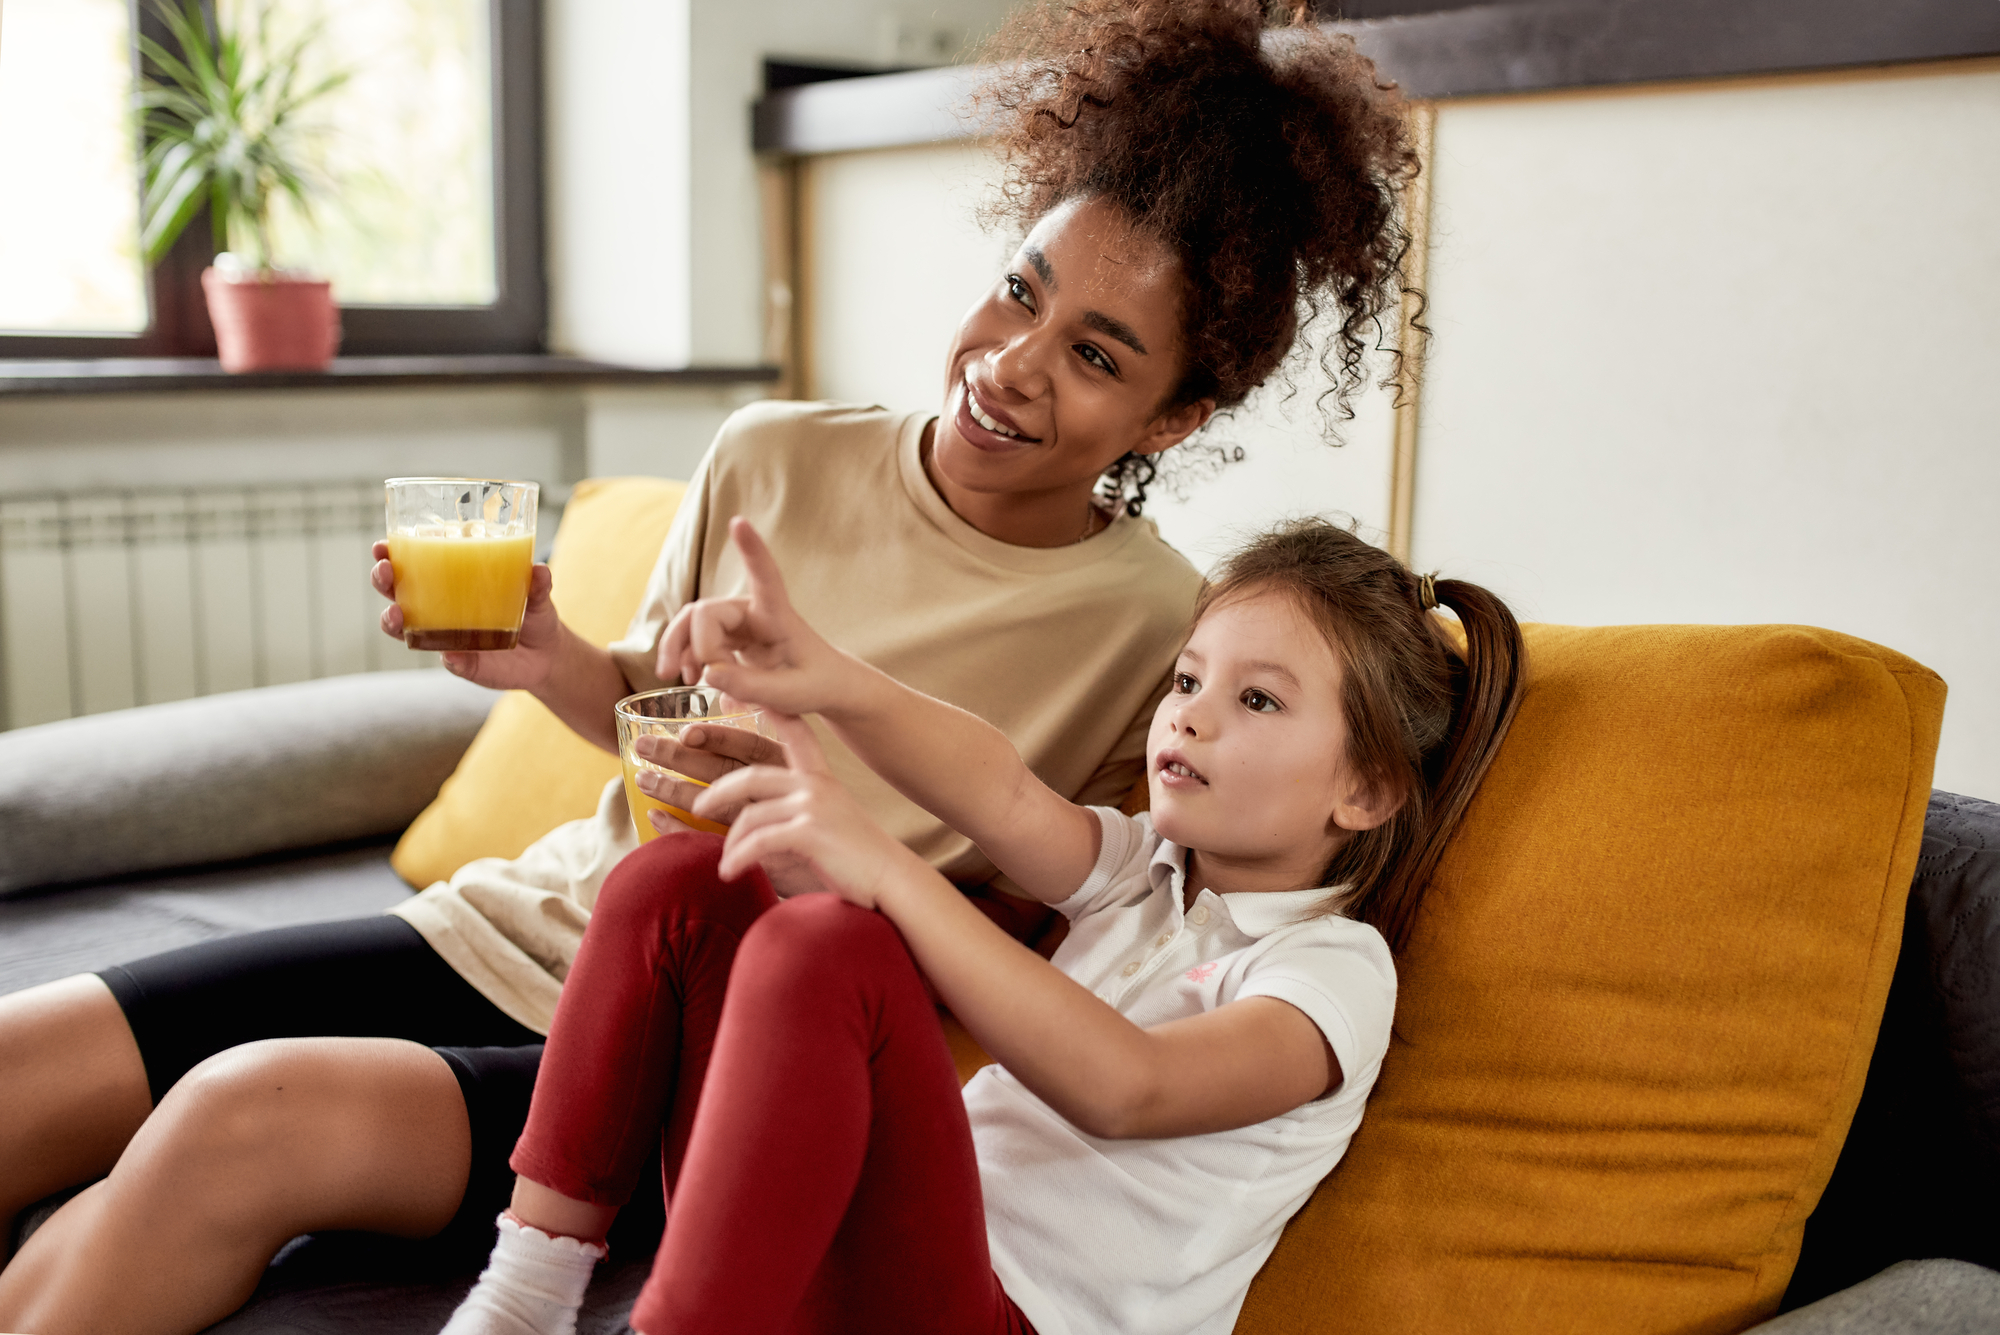 Support your child's communication goals at home